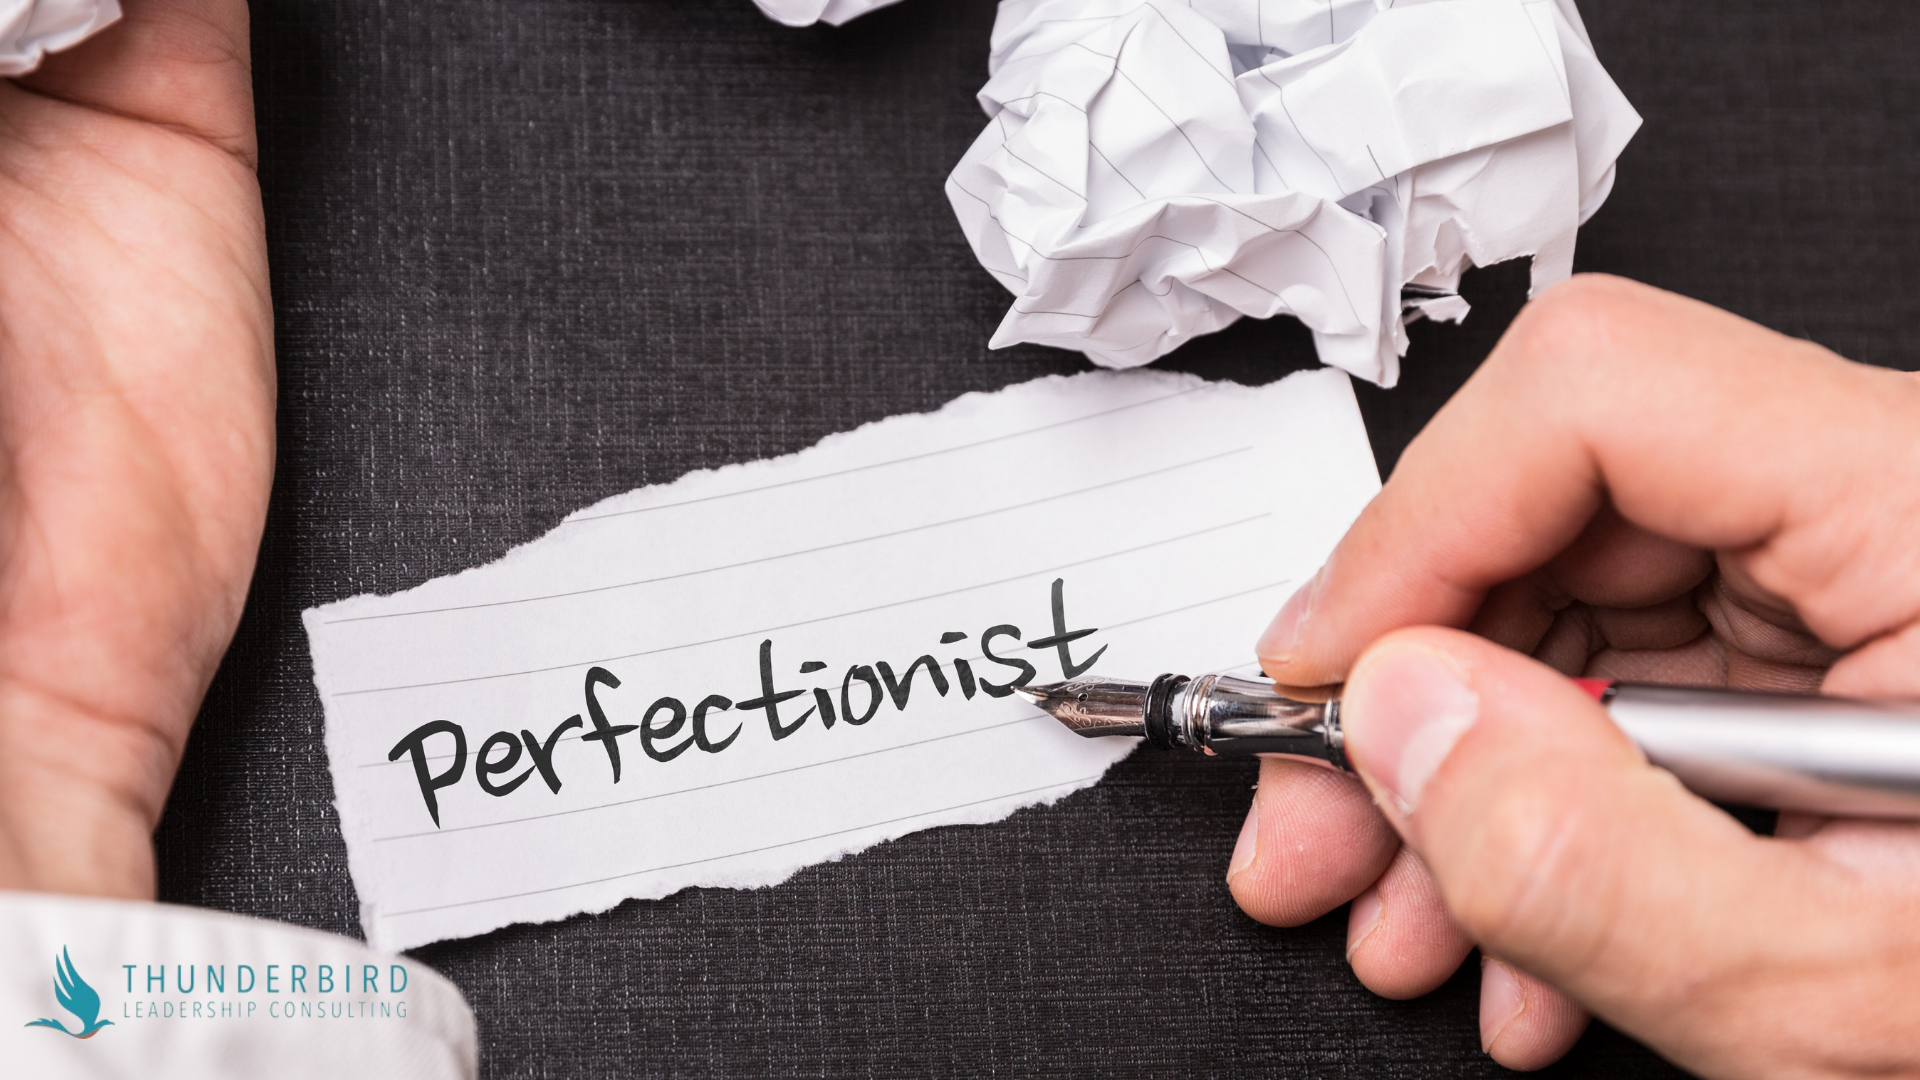 TLC – Blog on Perfectionism